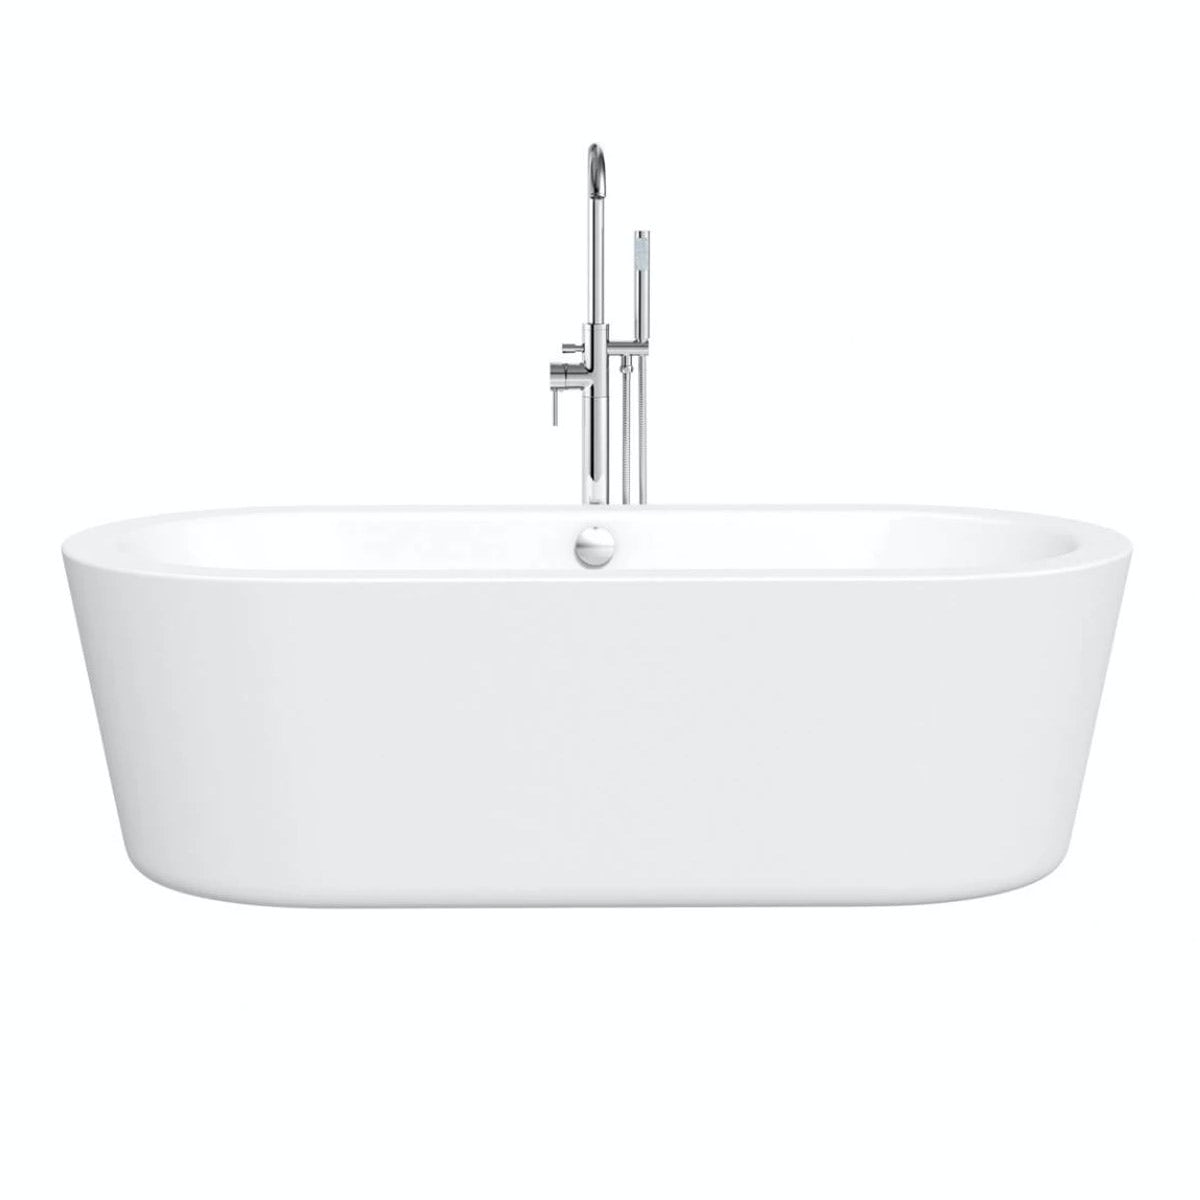 Crescent freestanding bath small special offer for Small baths 1200